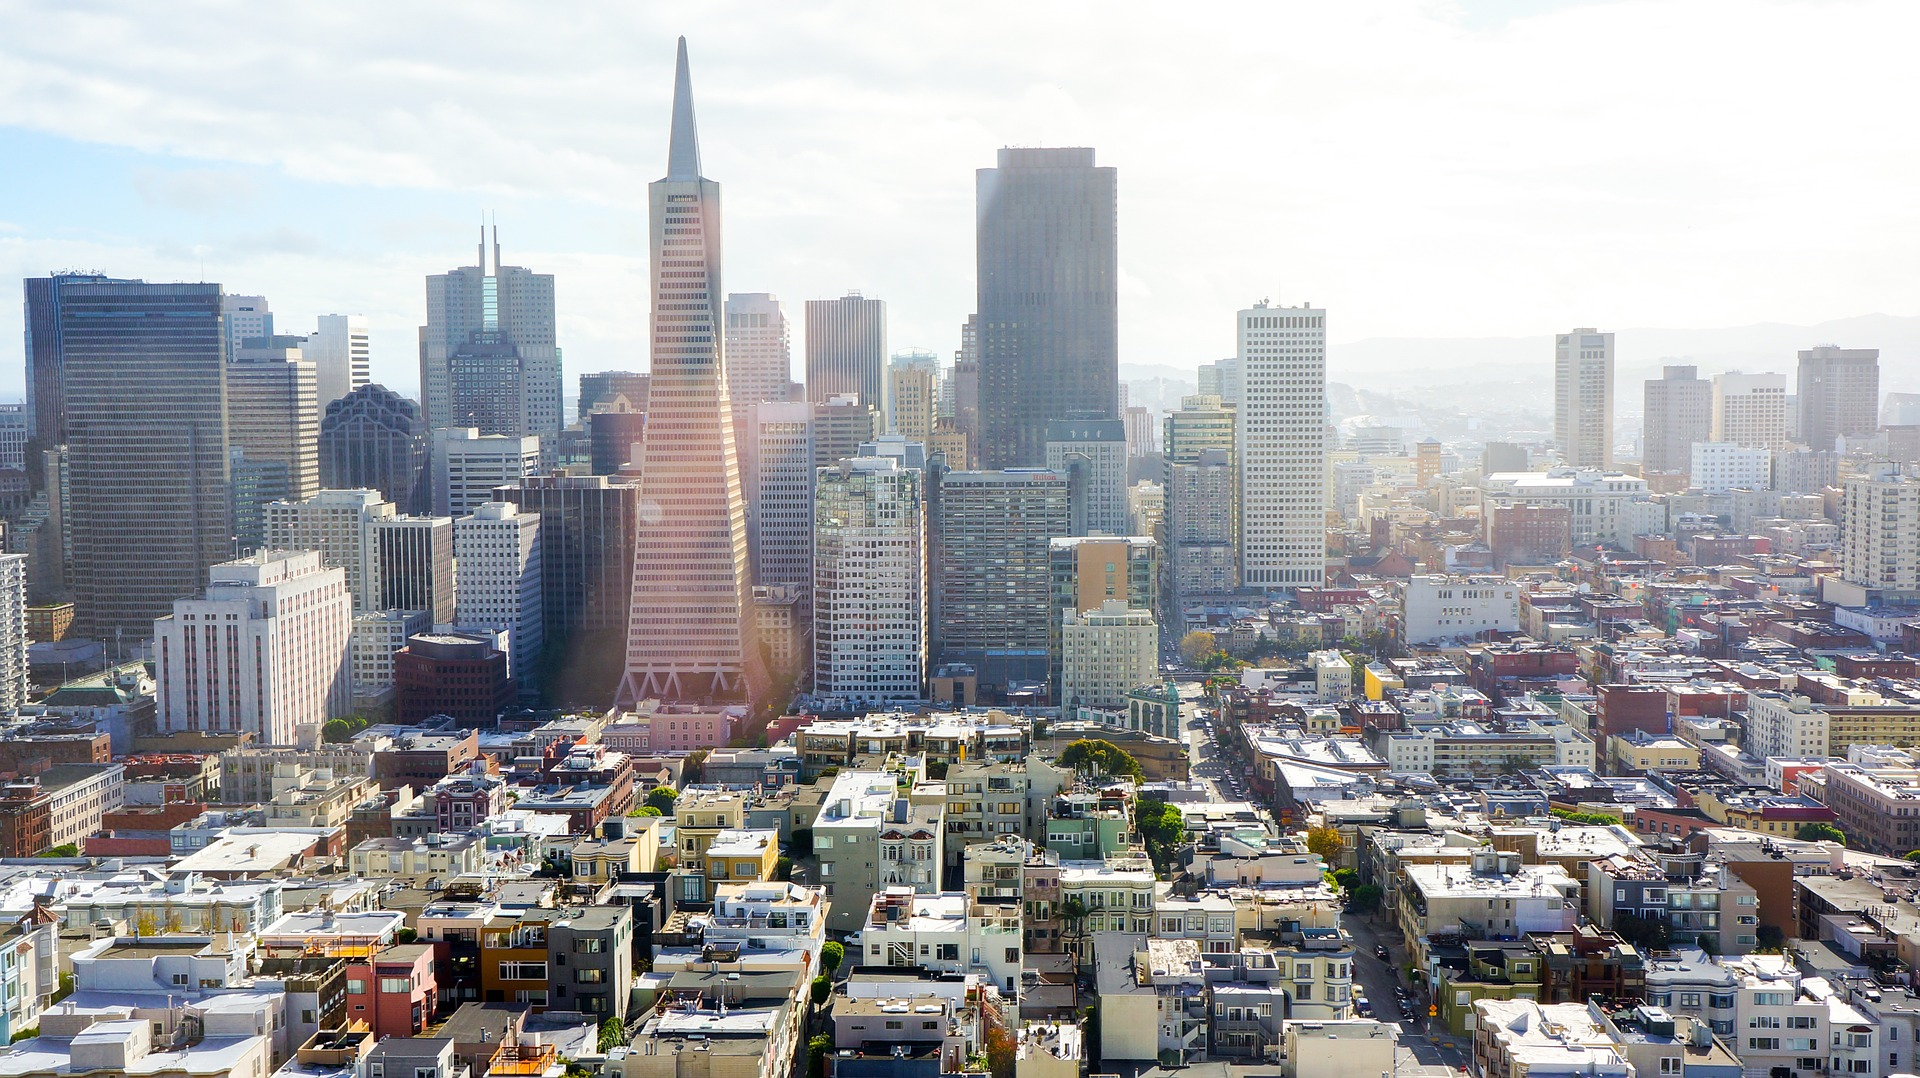 San Francisco, California. Among the most expensive real estate markets in the world.